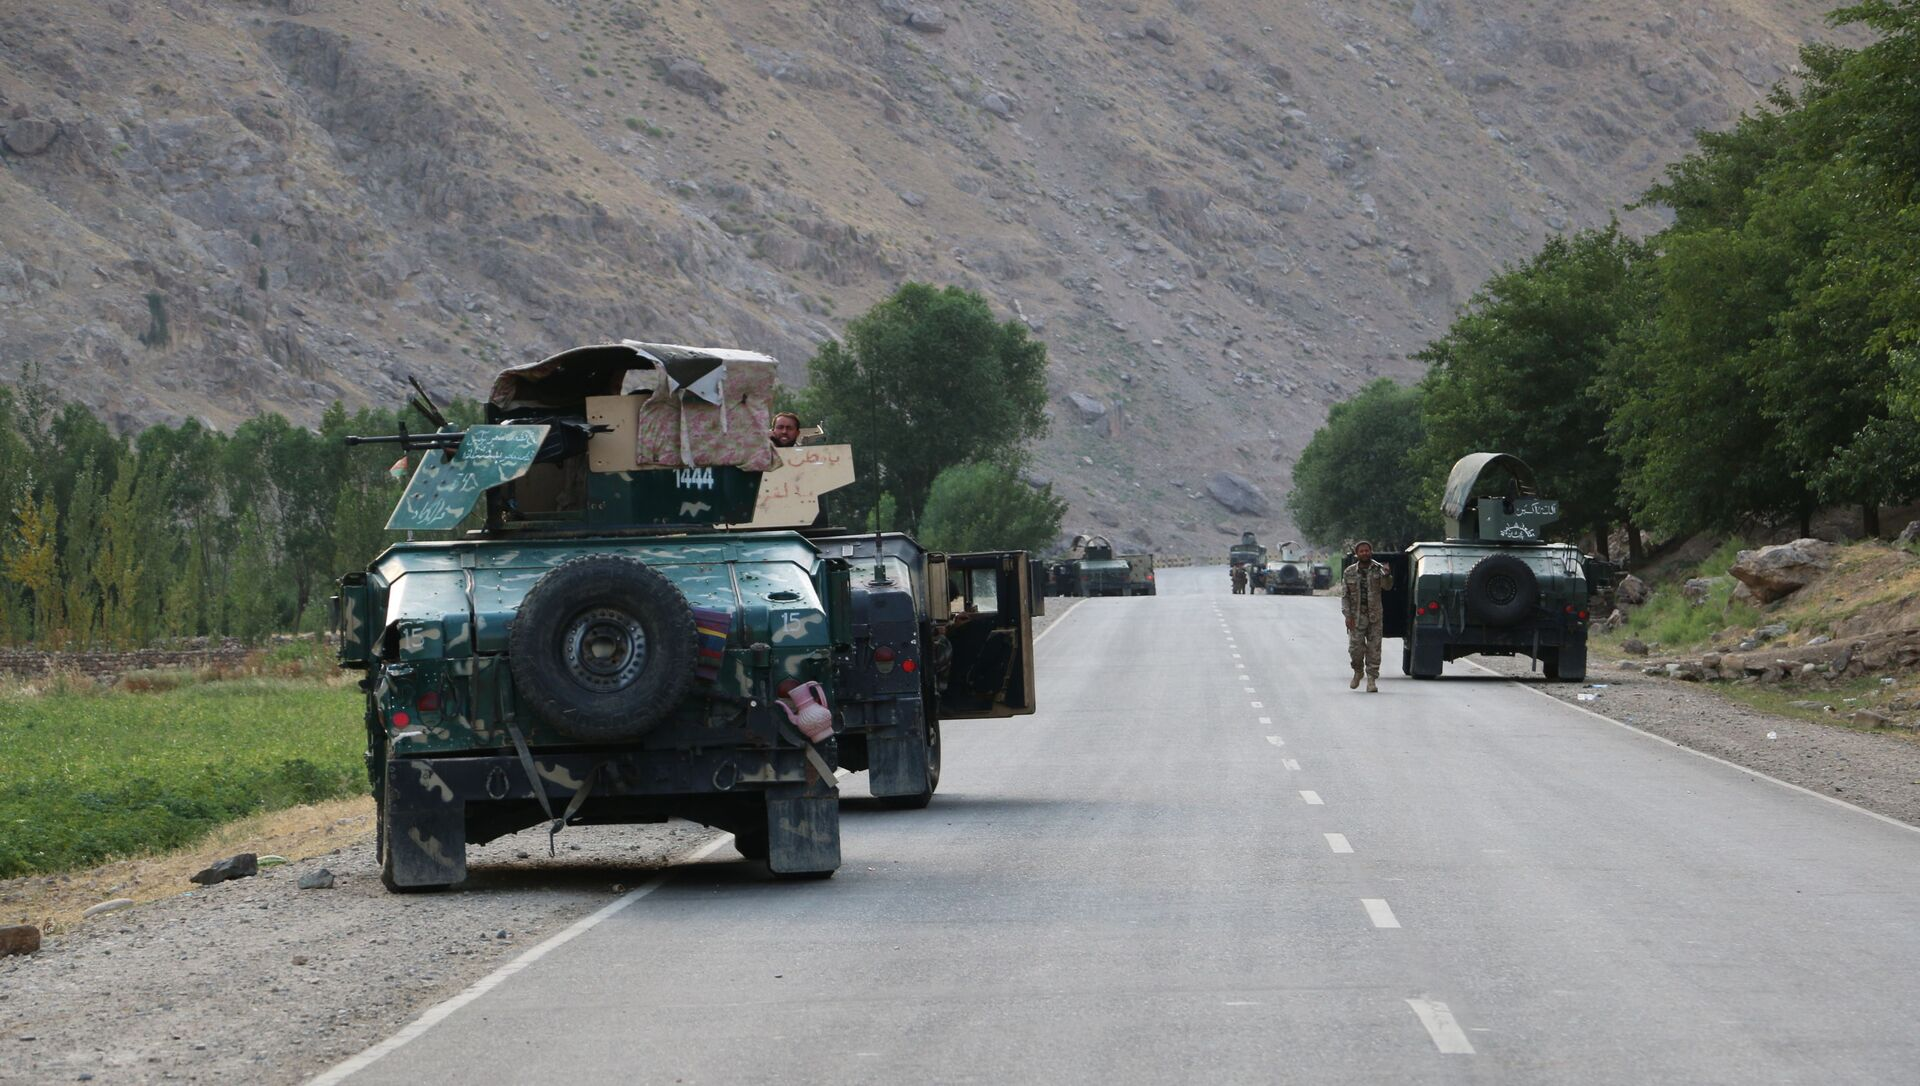 Afghan soldiers pause on a road at the front line of fighting between Taliban and Security forces,  near the city of Badakhshan, northern Afghanistan, Sunday, July. 4, 2021. - Sputnik International, 1920, 03.08.2021